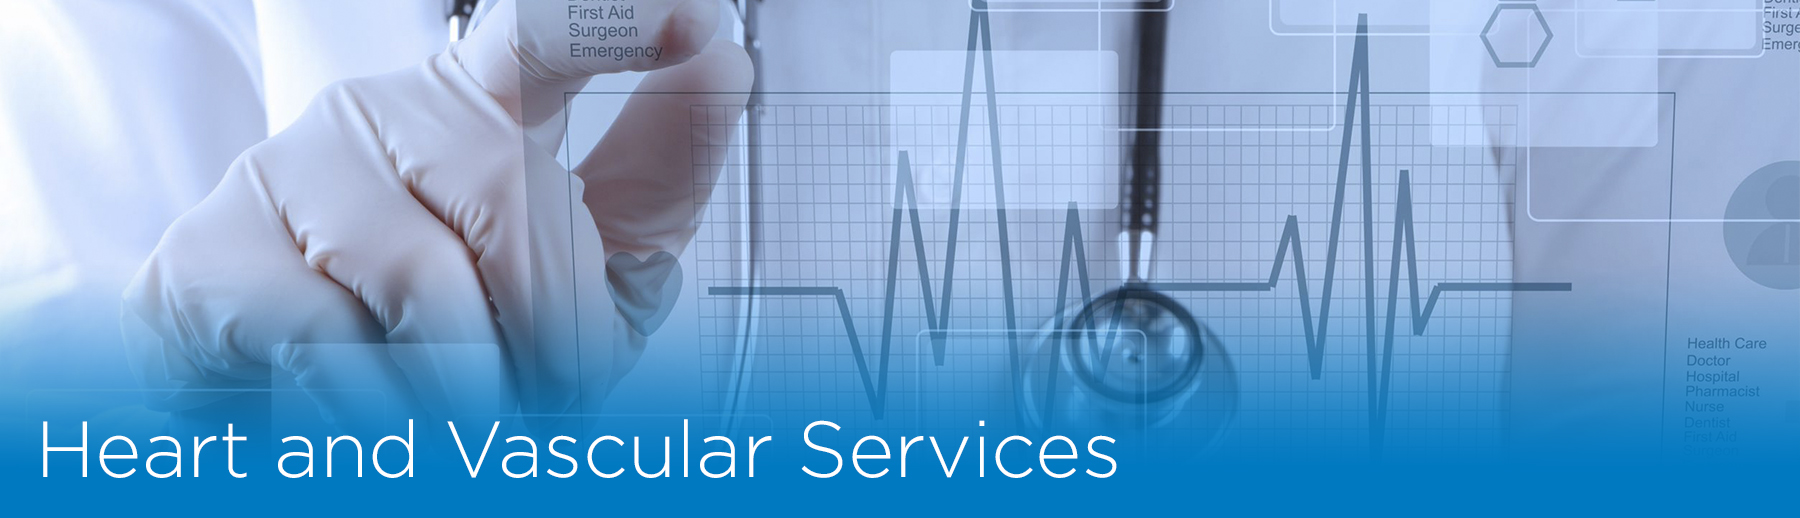 Heart and Vascular Services